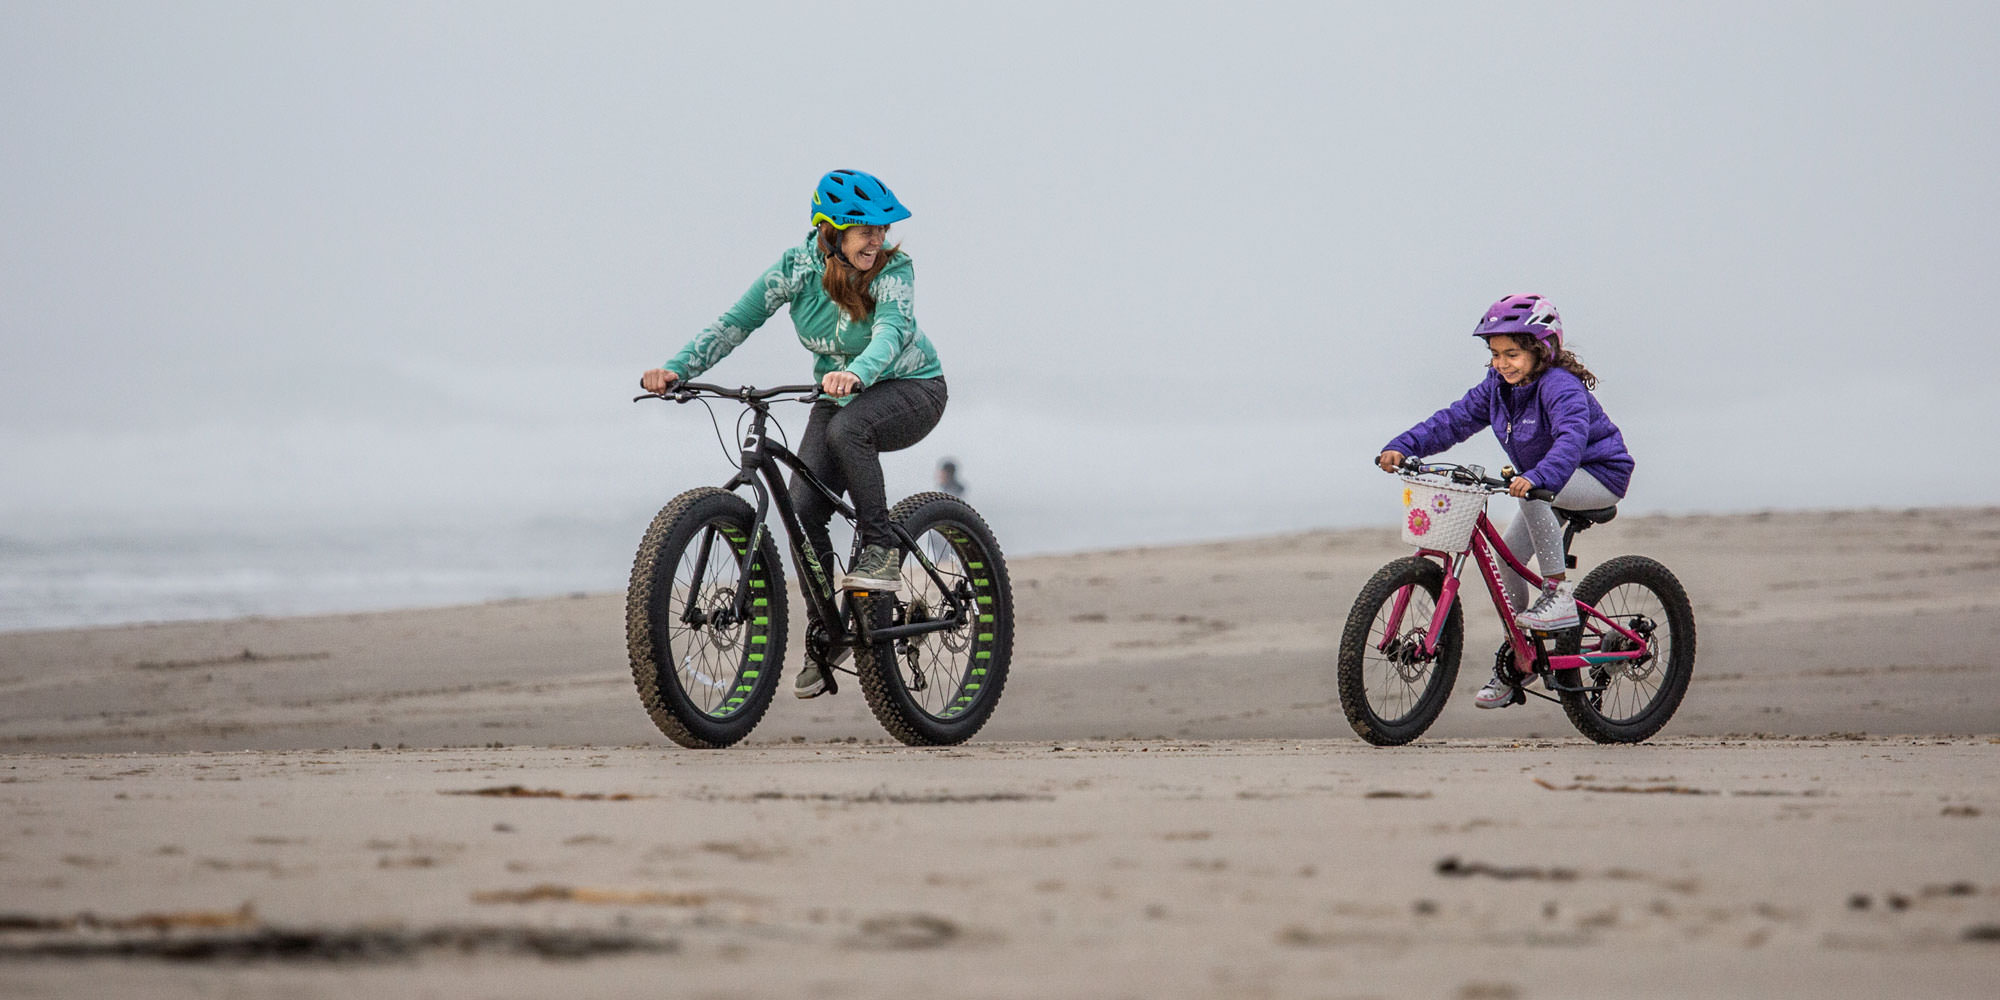 A woman and girl laugh as they ride fat bikes on the sand.